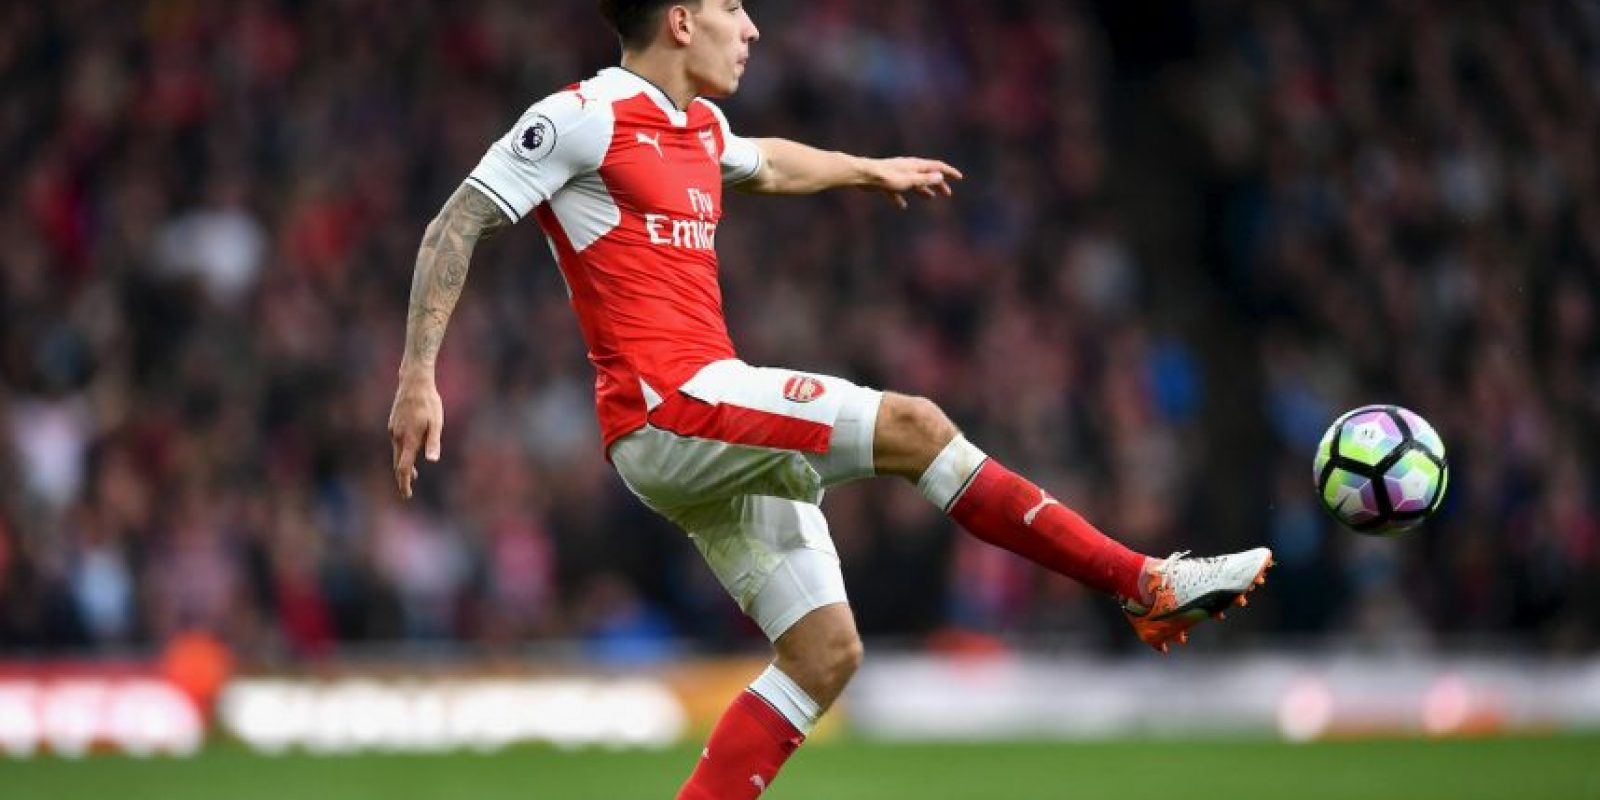 13.Héctor Bellerín (Arsenal) – 34.77 km/h Foto: Getty images